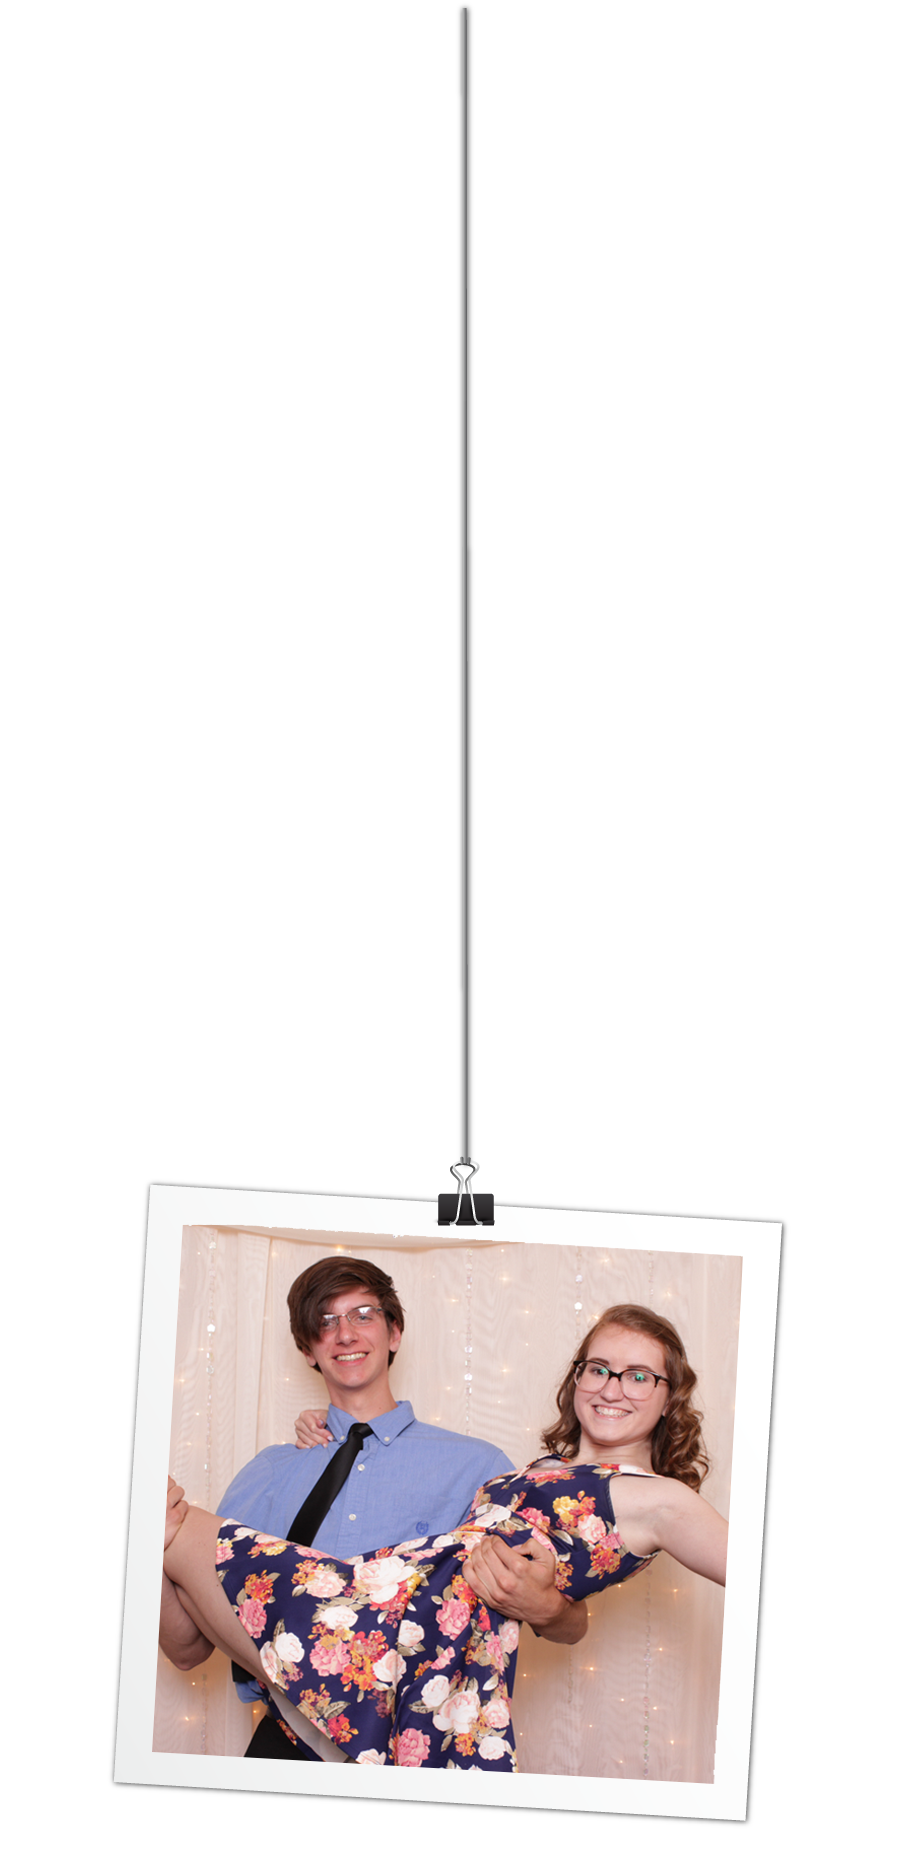 Couple in photo booth illustrated in picture